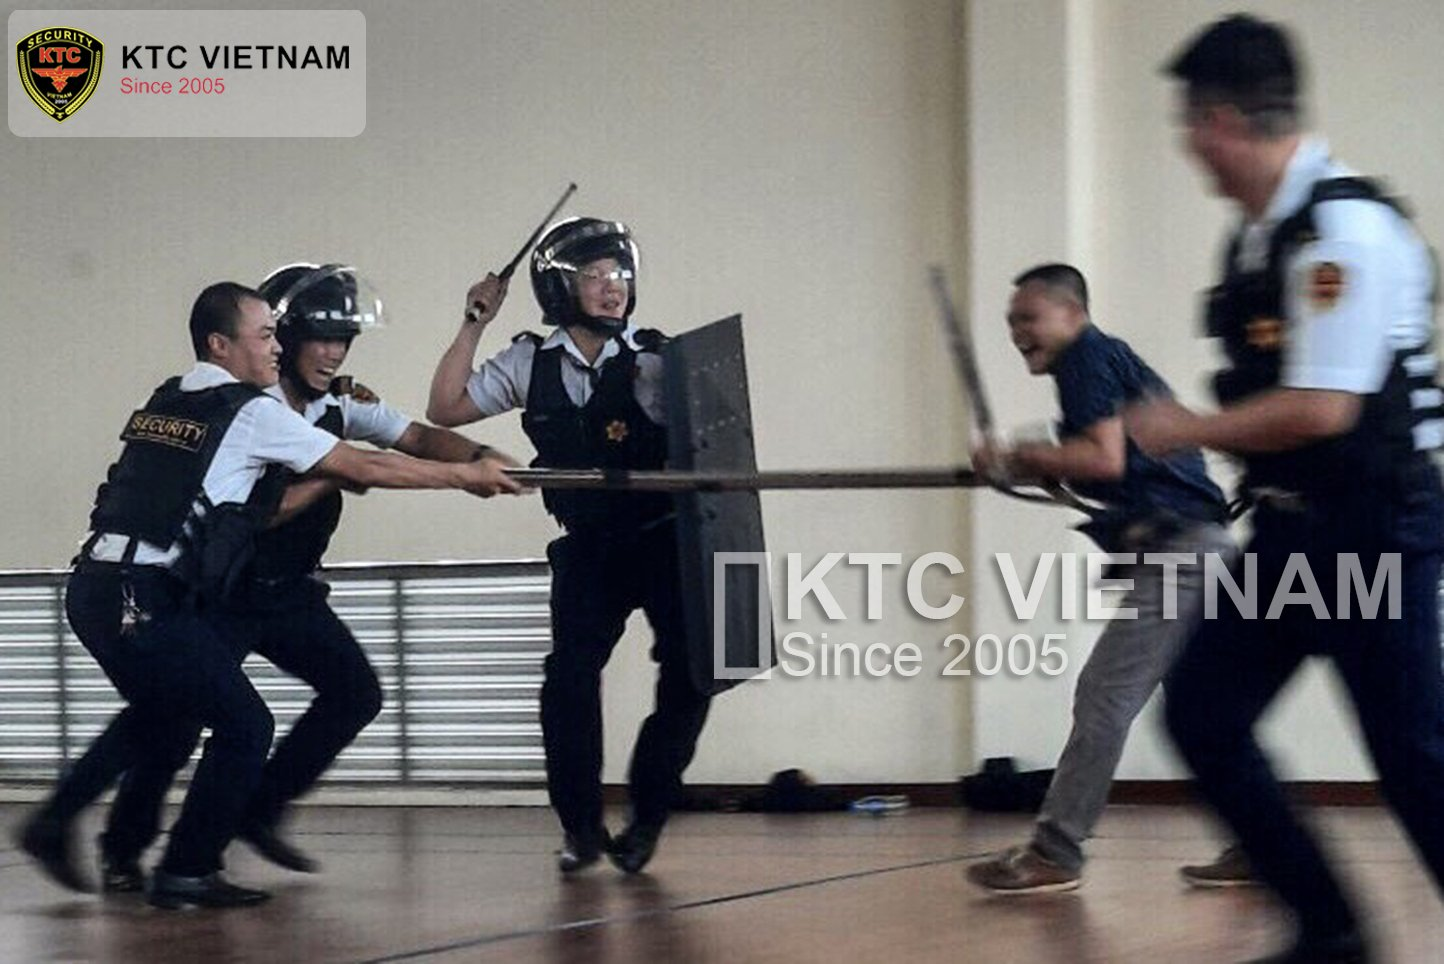 KTC Vietnam organized Professional Training